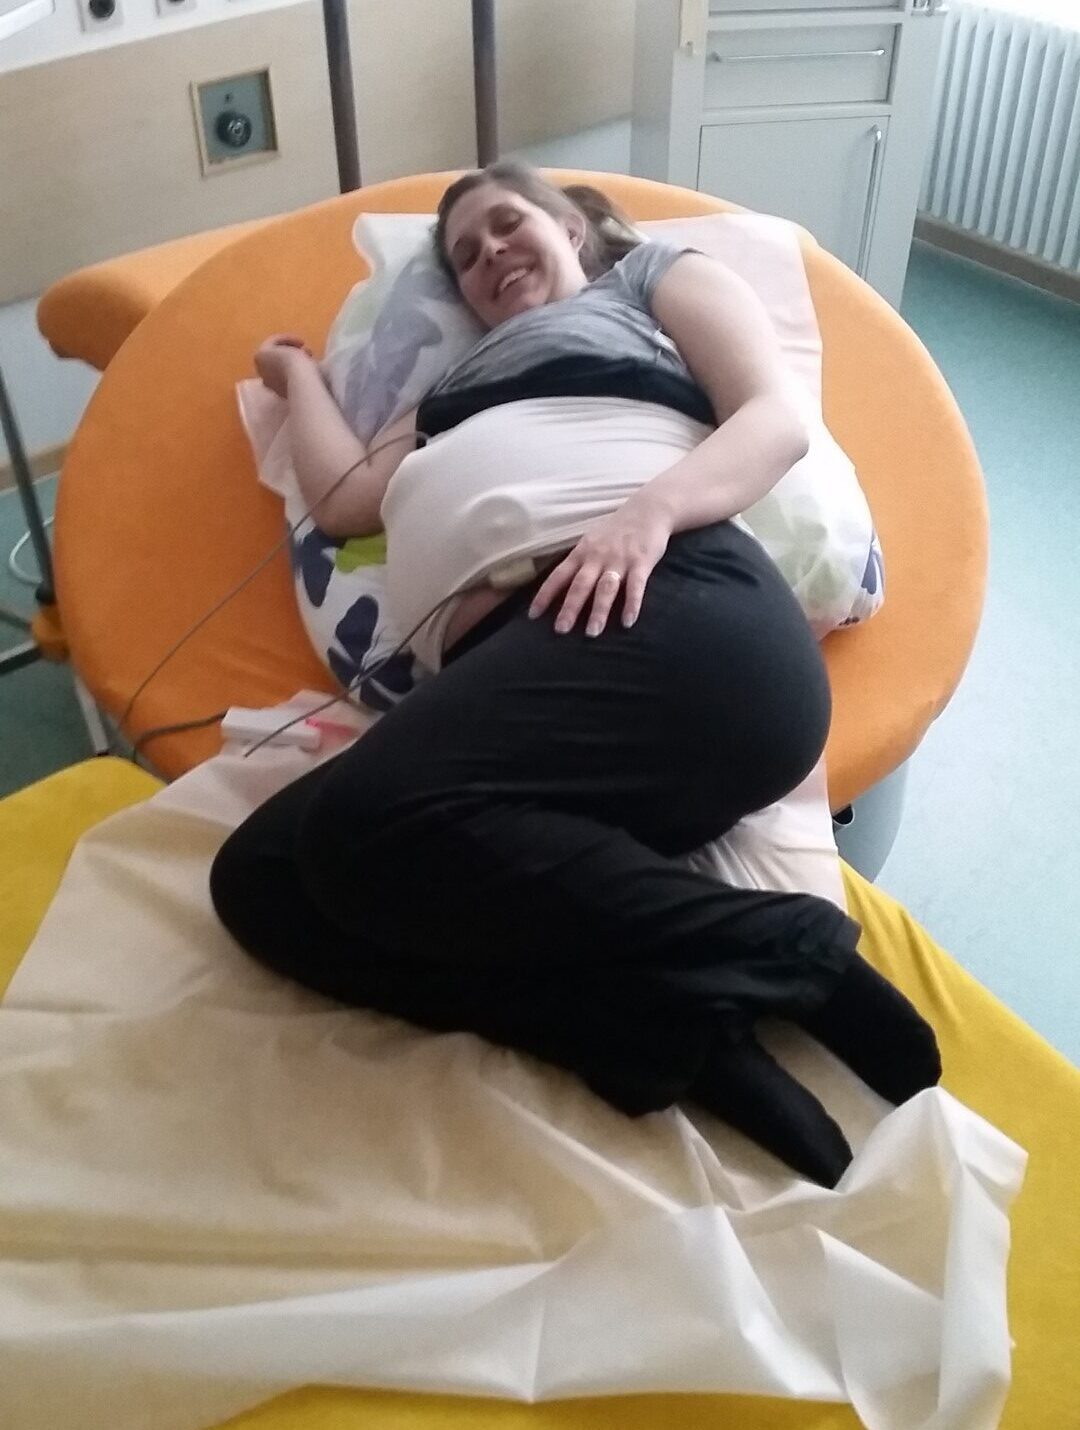 giving birth in germany as a foreigner